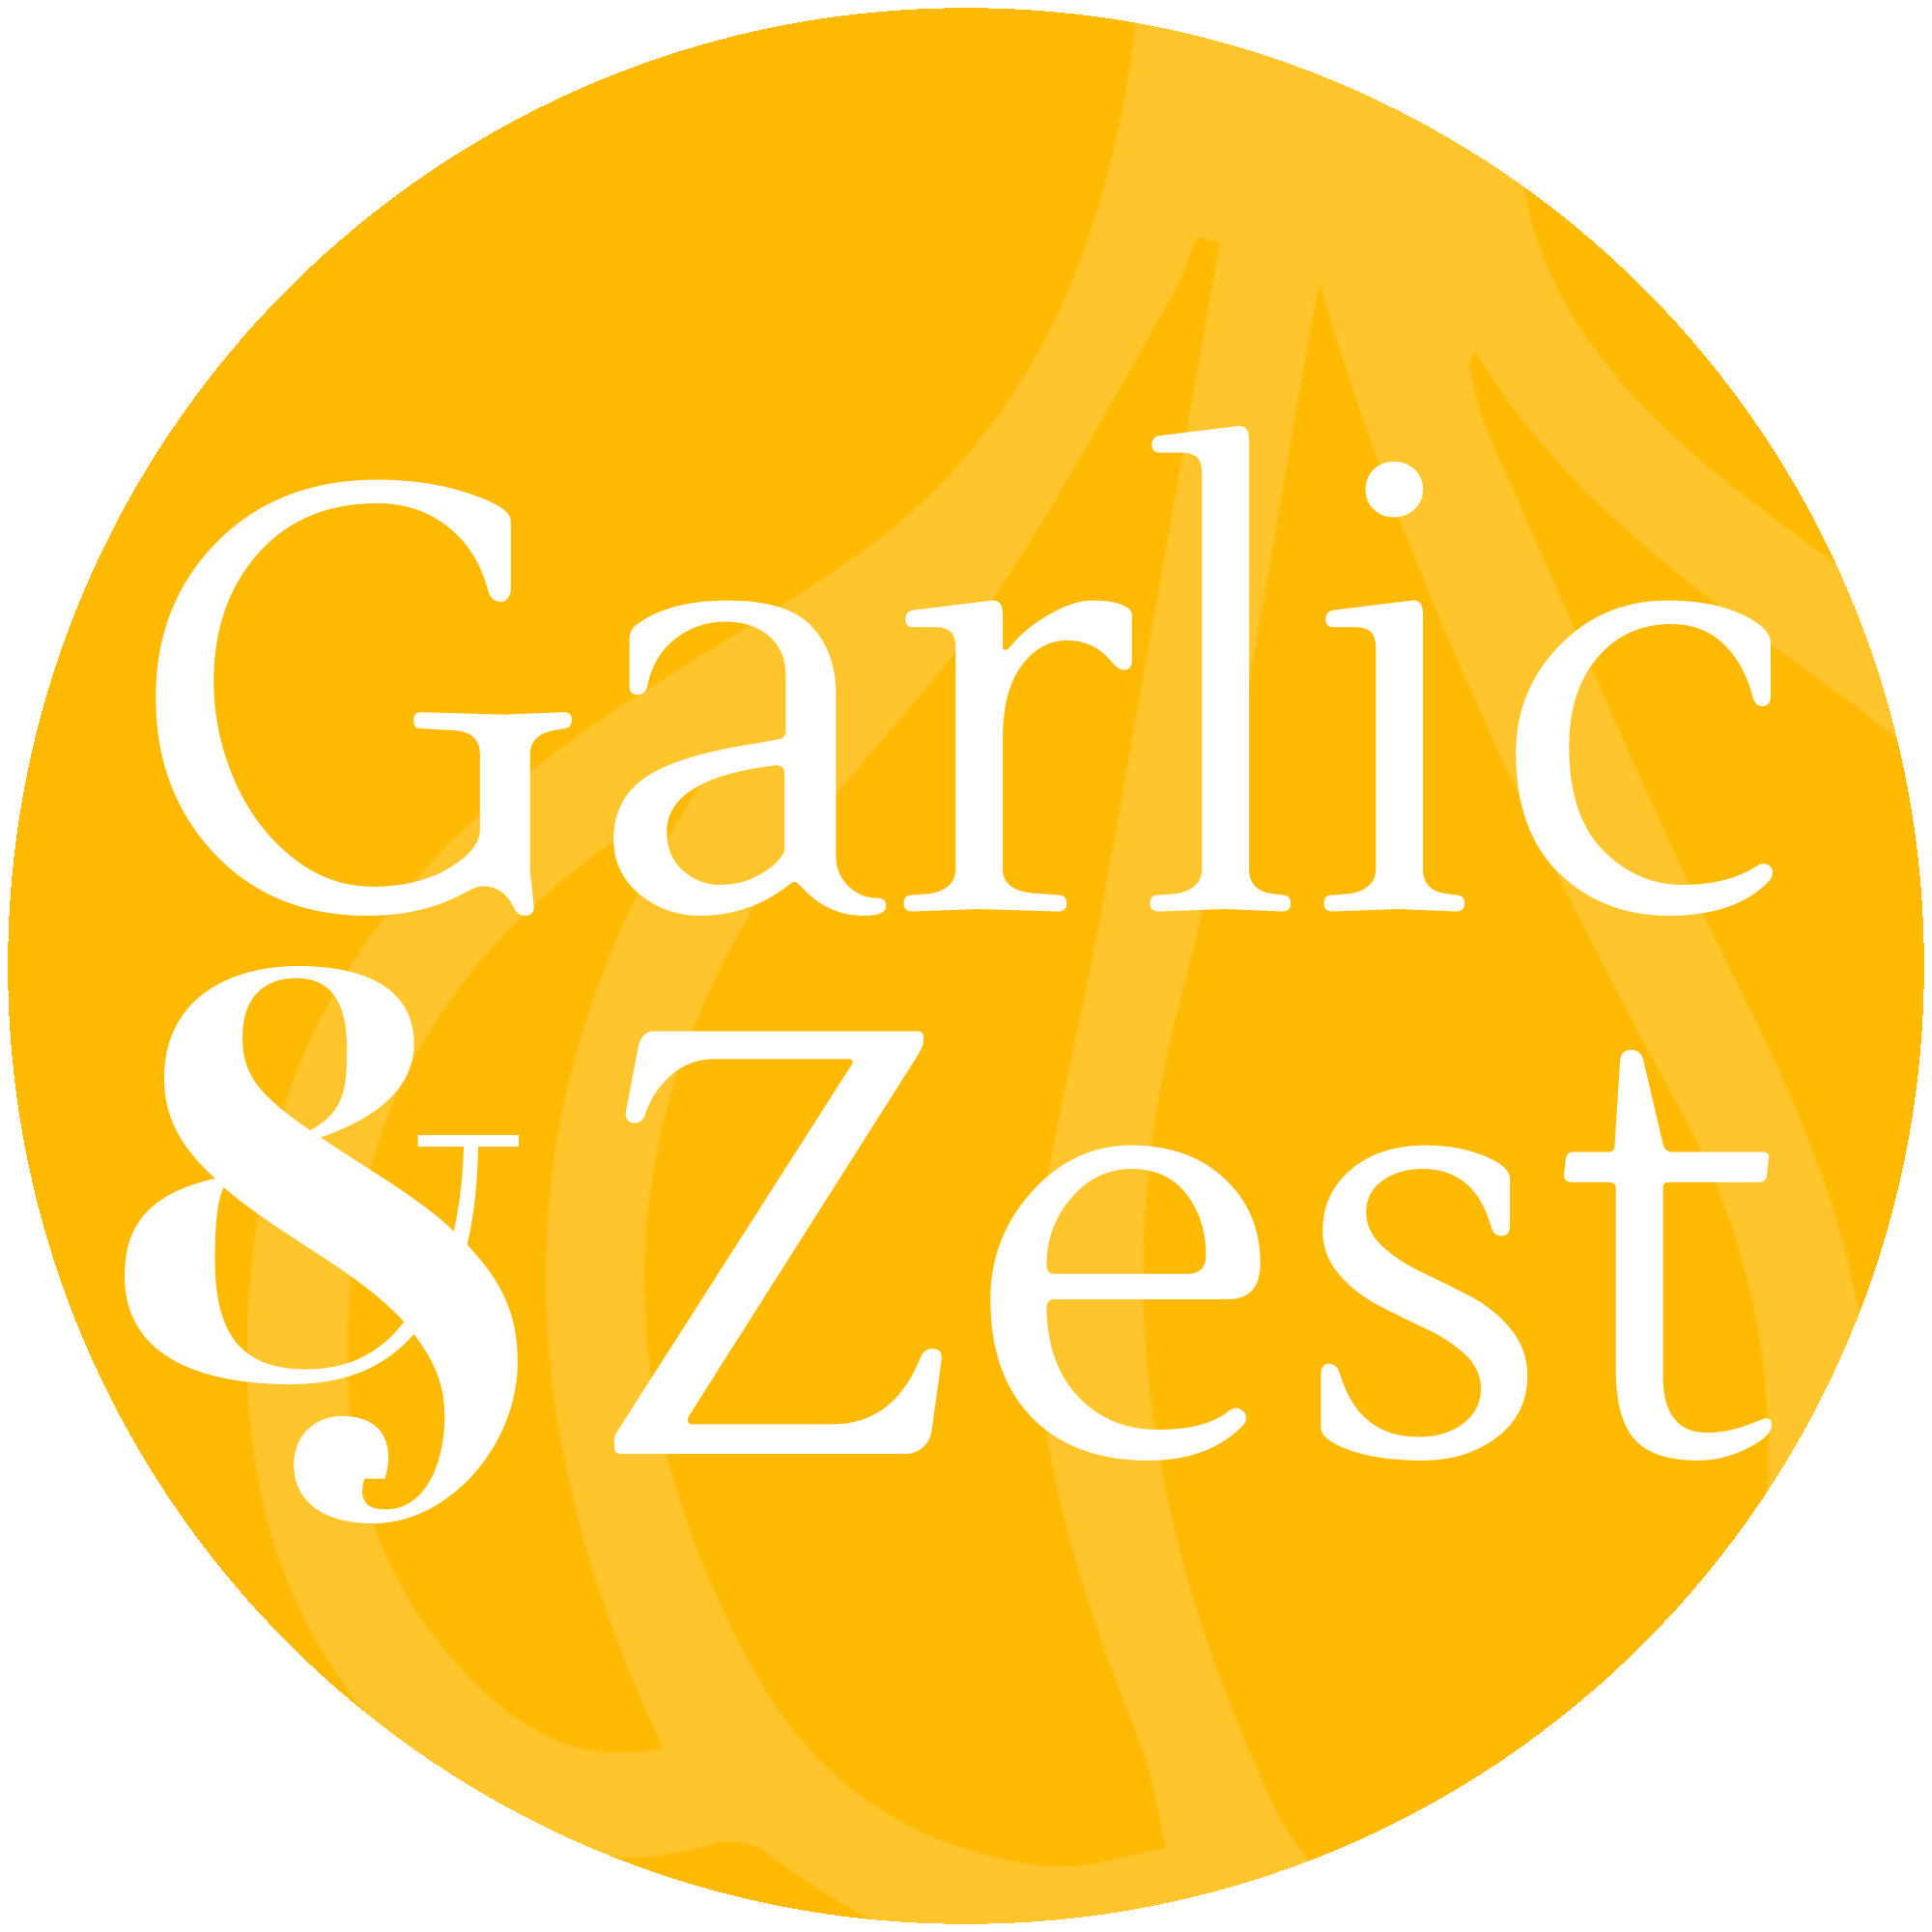 Garlic zest gourmet cooking. Dessert clipart rhubarb pie